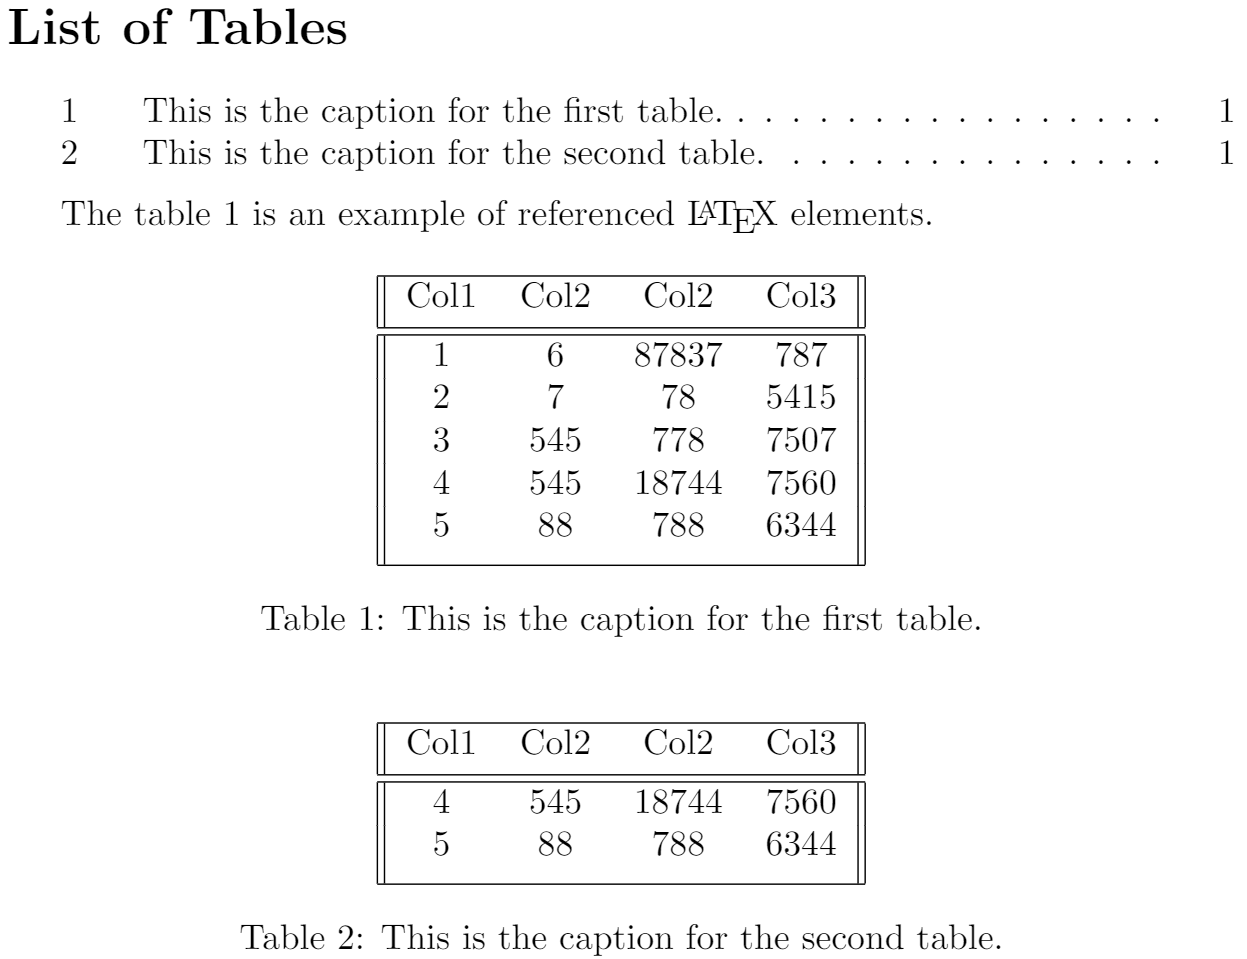 Example of list of tables